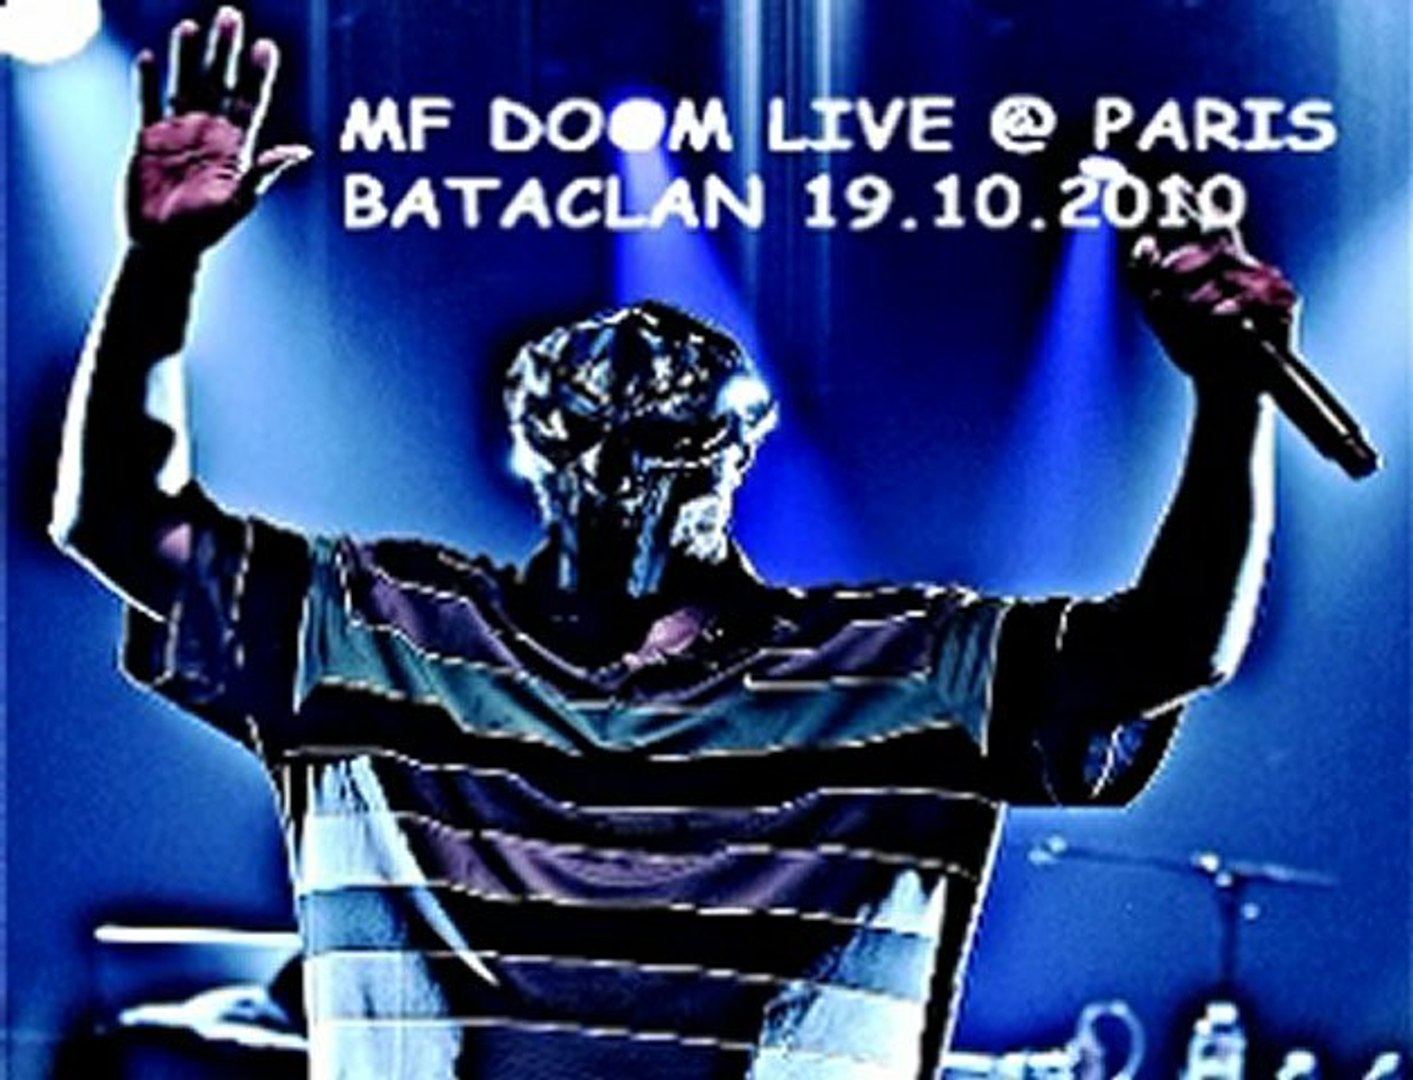 MF Doom Live @ Bataclan Paris 19.10.2010 Change The Beat - Rhymes Like Dimes